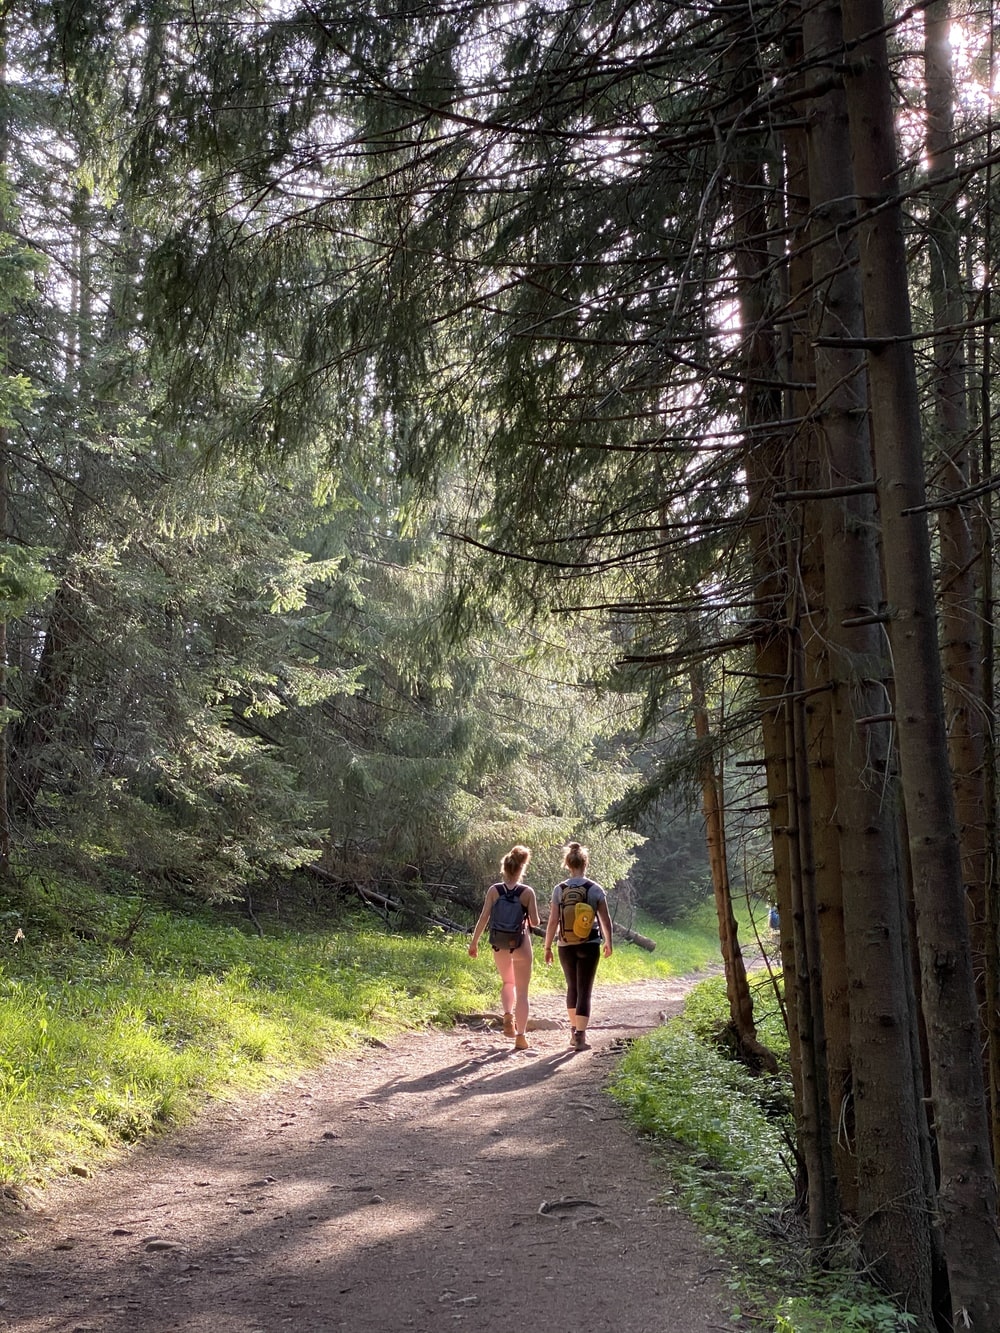 2 men walking on dirt road in the woods during daytime